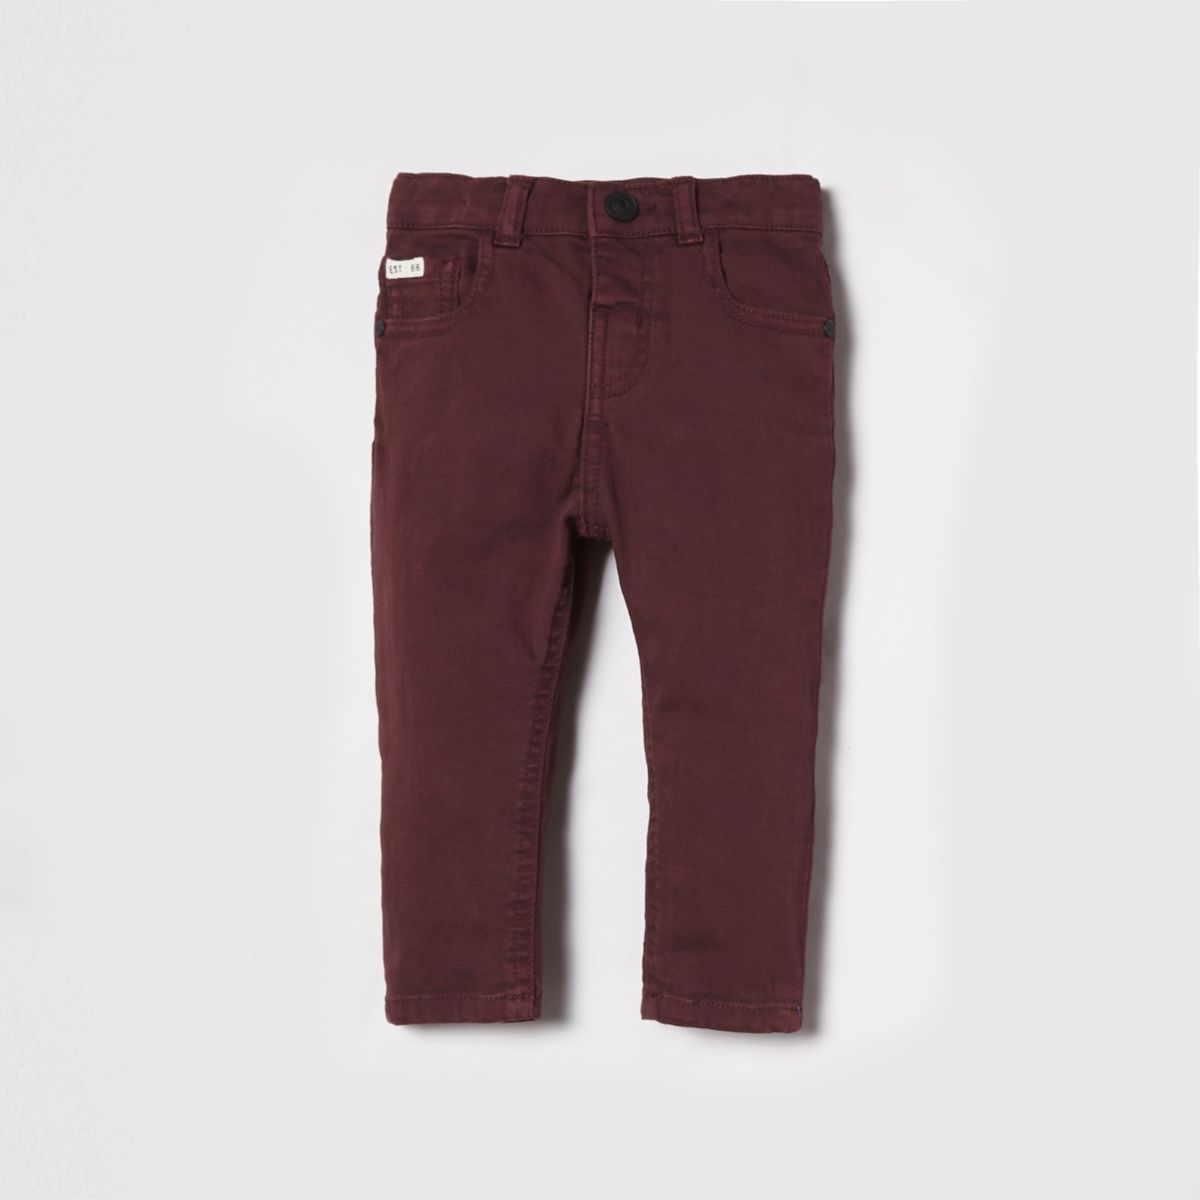 Mini boys burgundy Sid skinny jeans